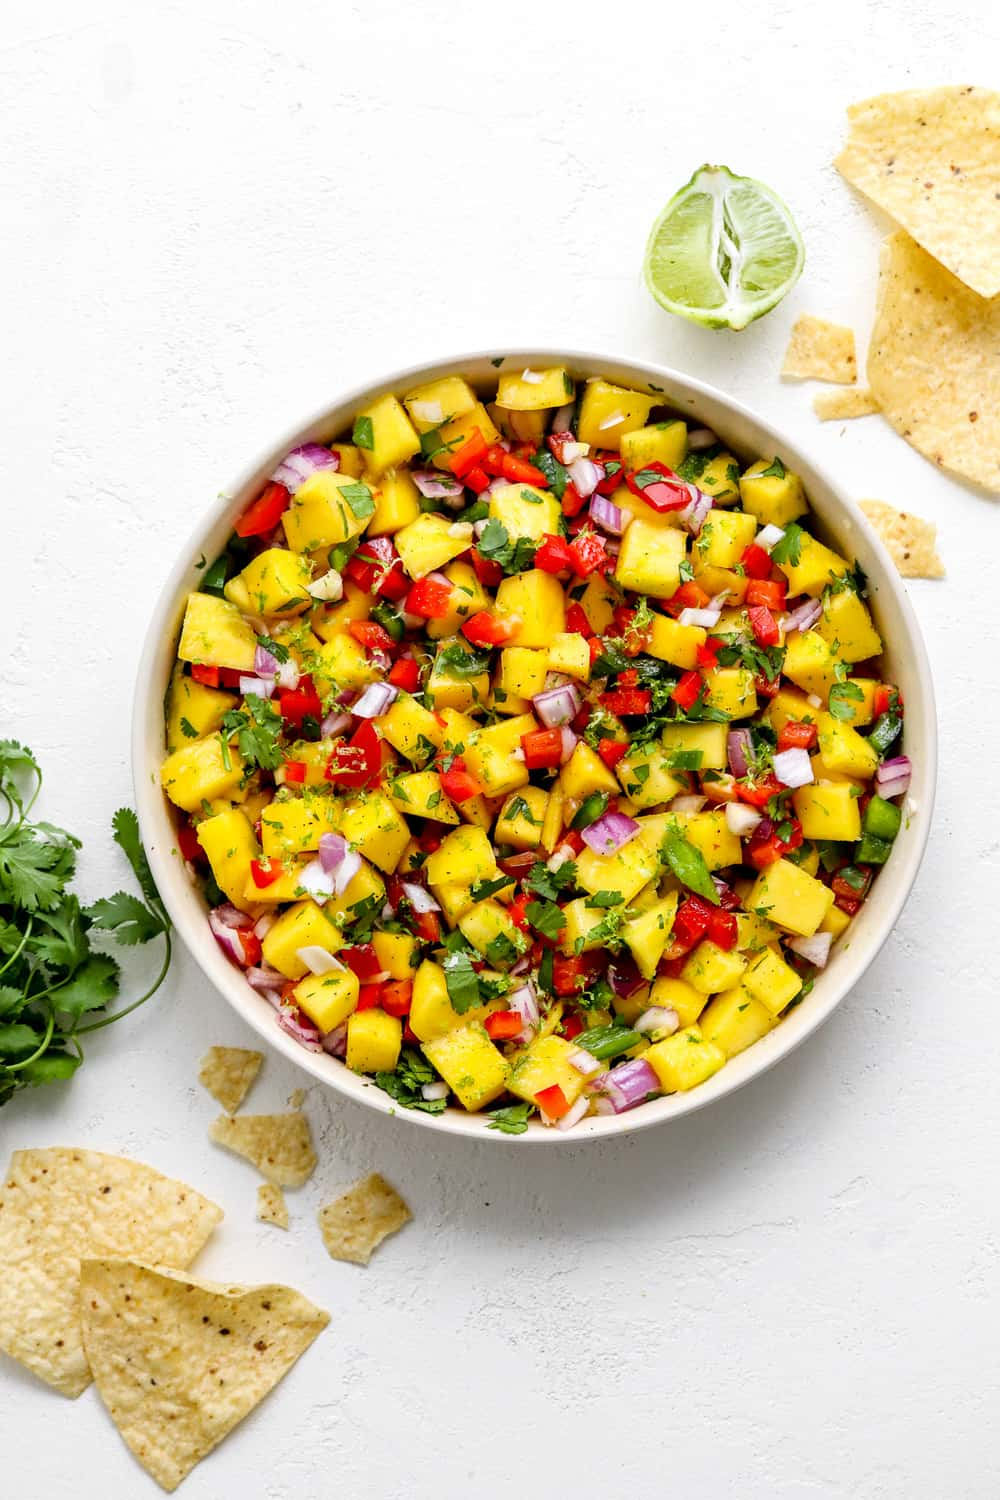 Bowl of yellow and red salsa with mangoes and peppers in it with whit corn tortilla chips next to it and a lime behind it.